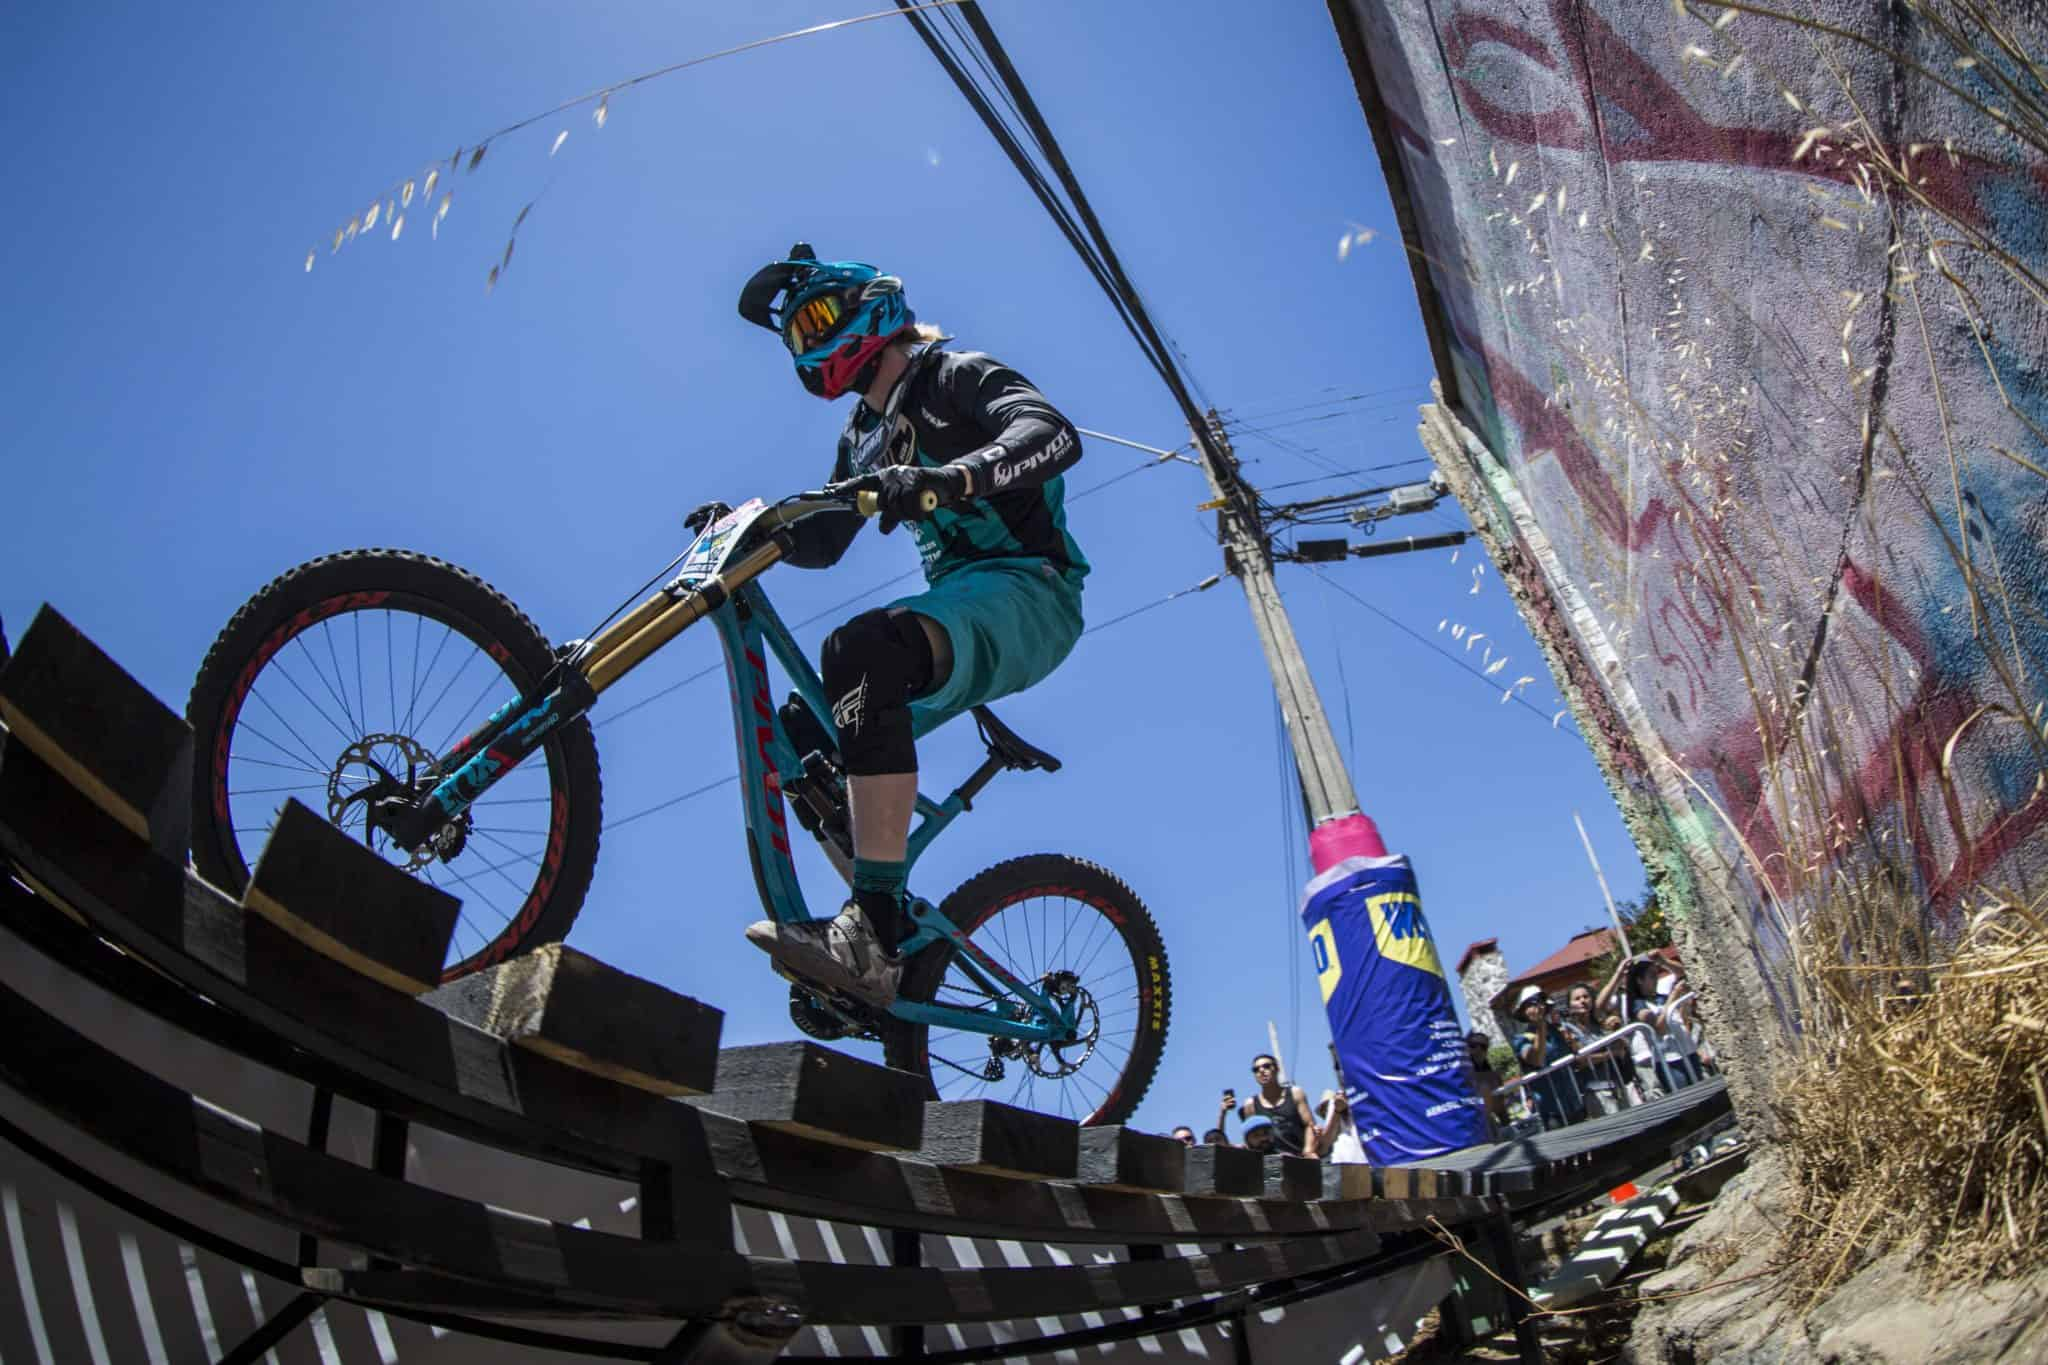 The 2018 World Cup Season is upon us! A New Season with New Riders